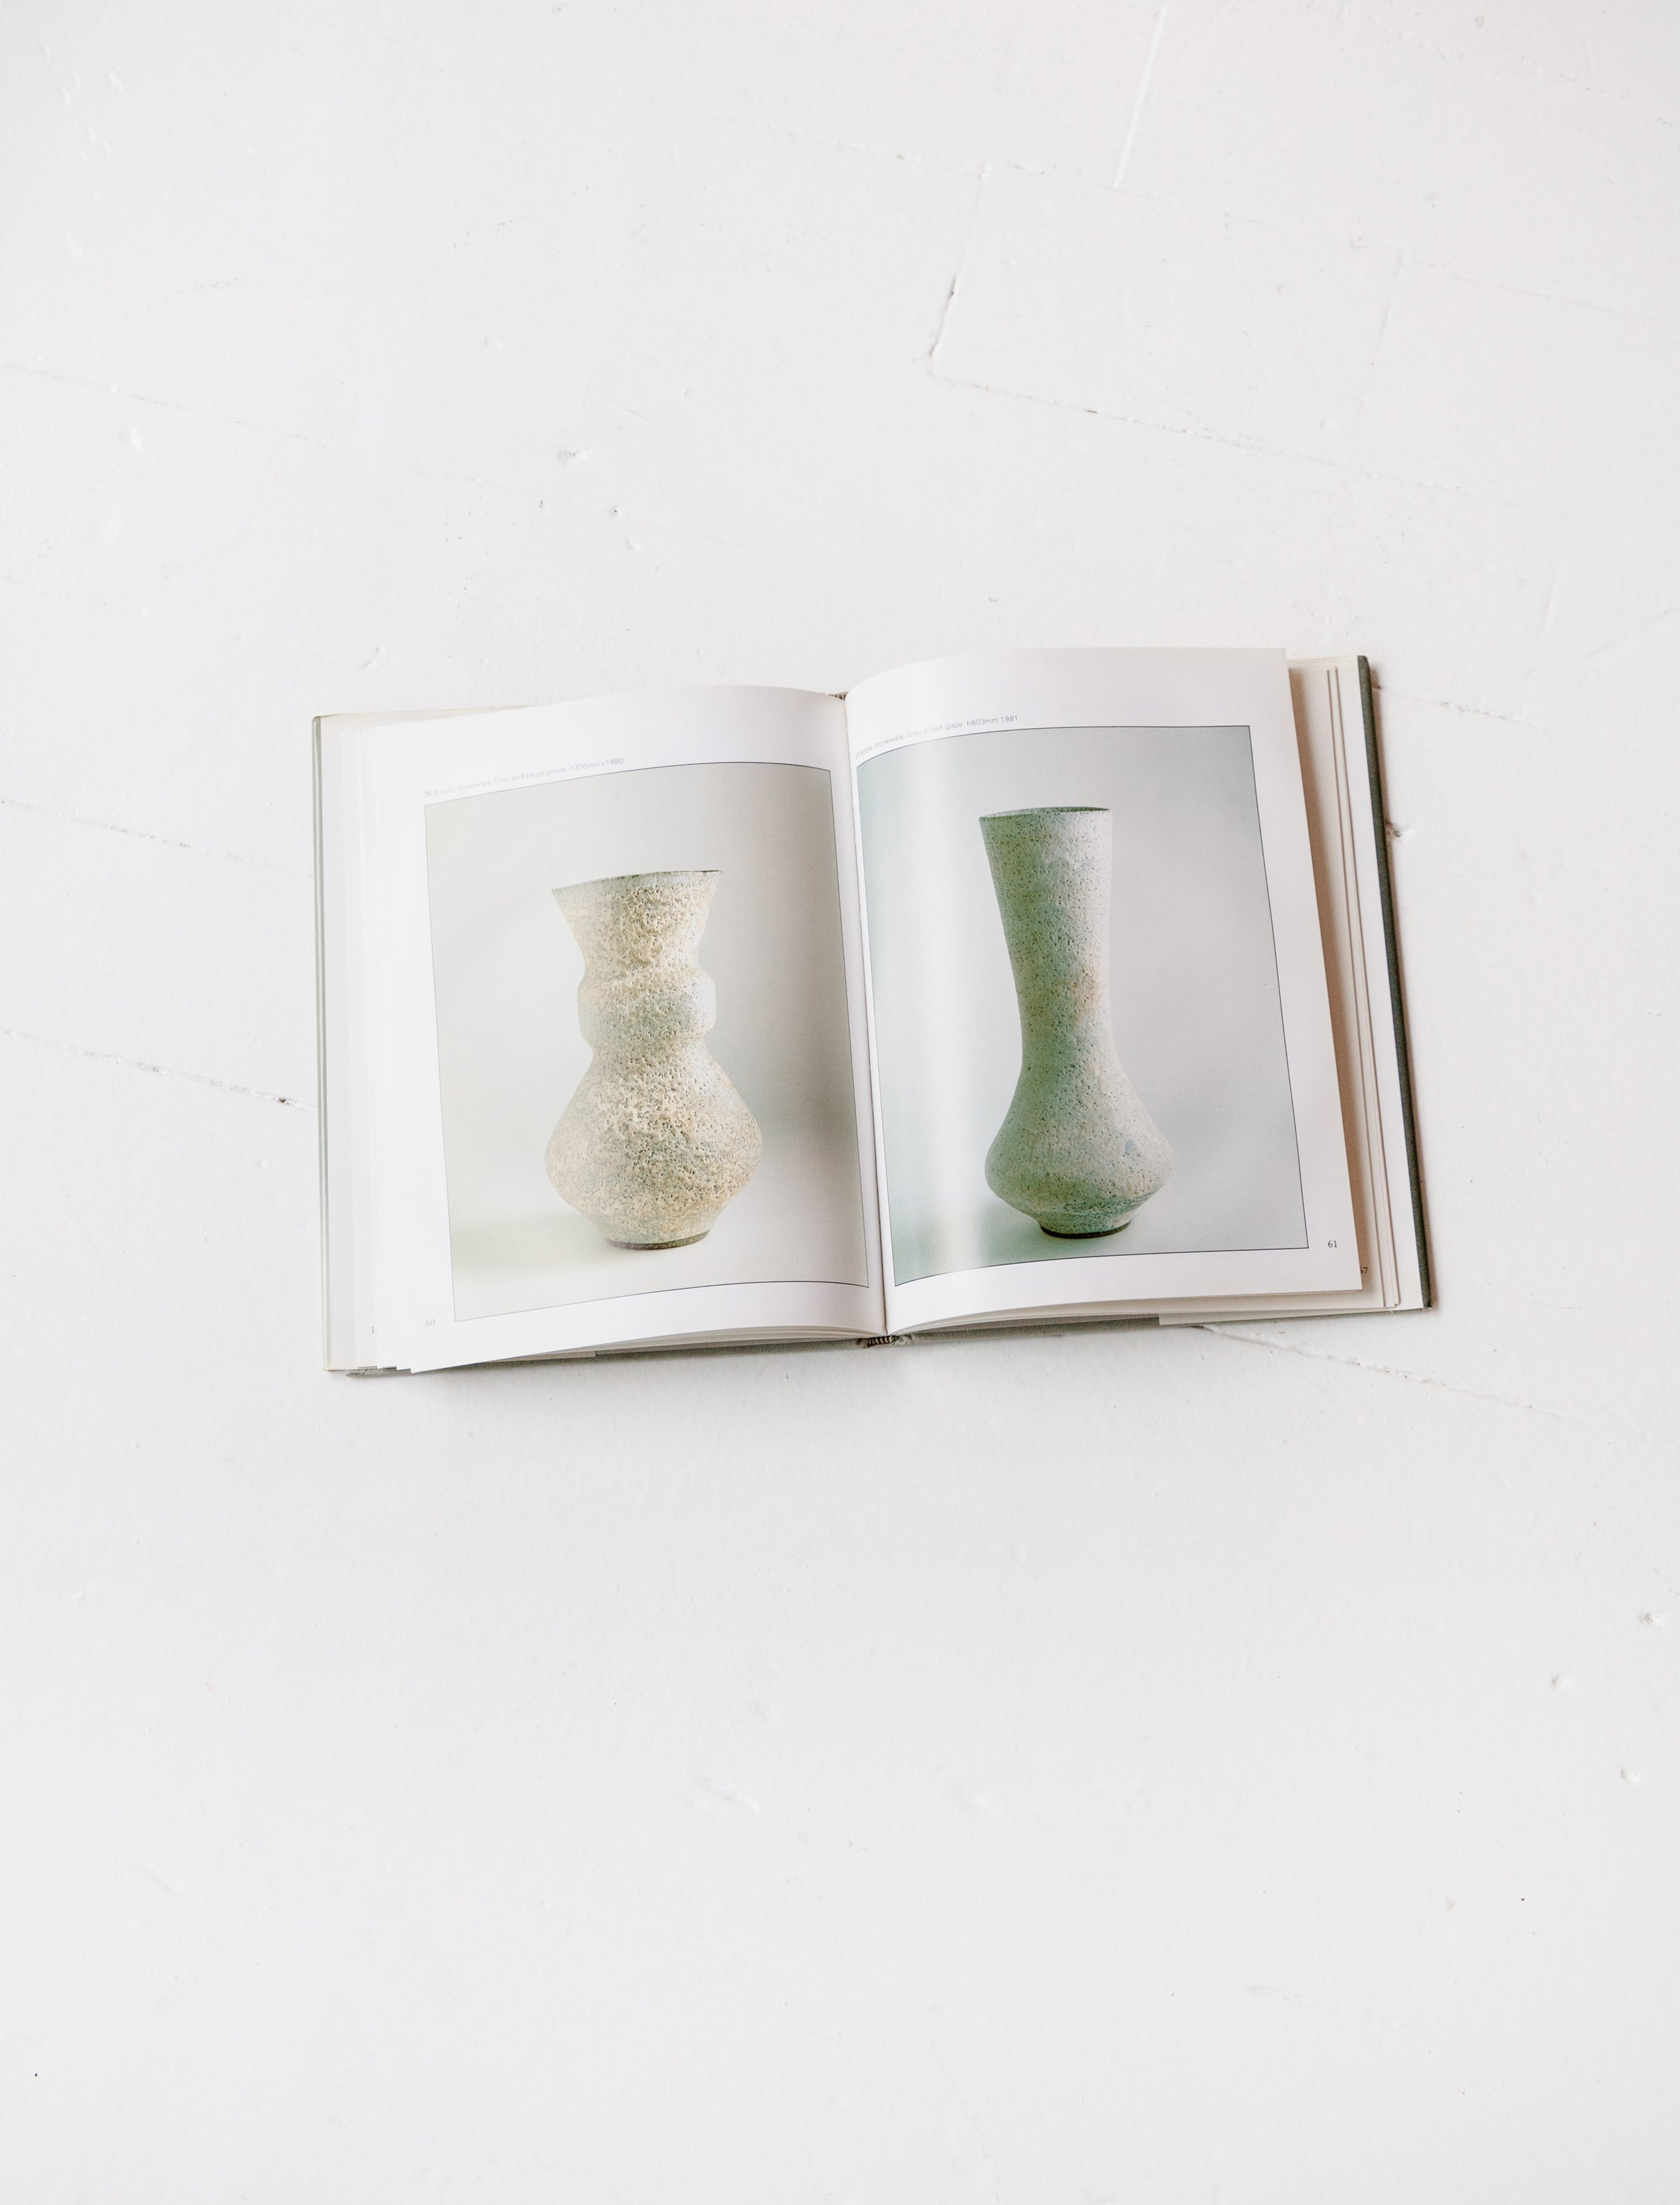 Lucie Rie : A Survey